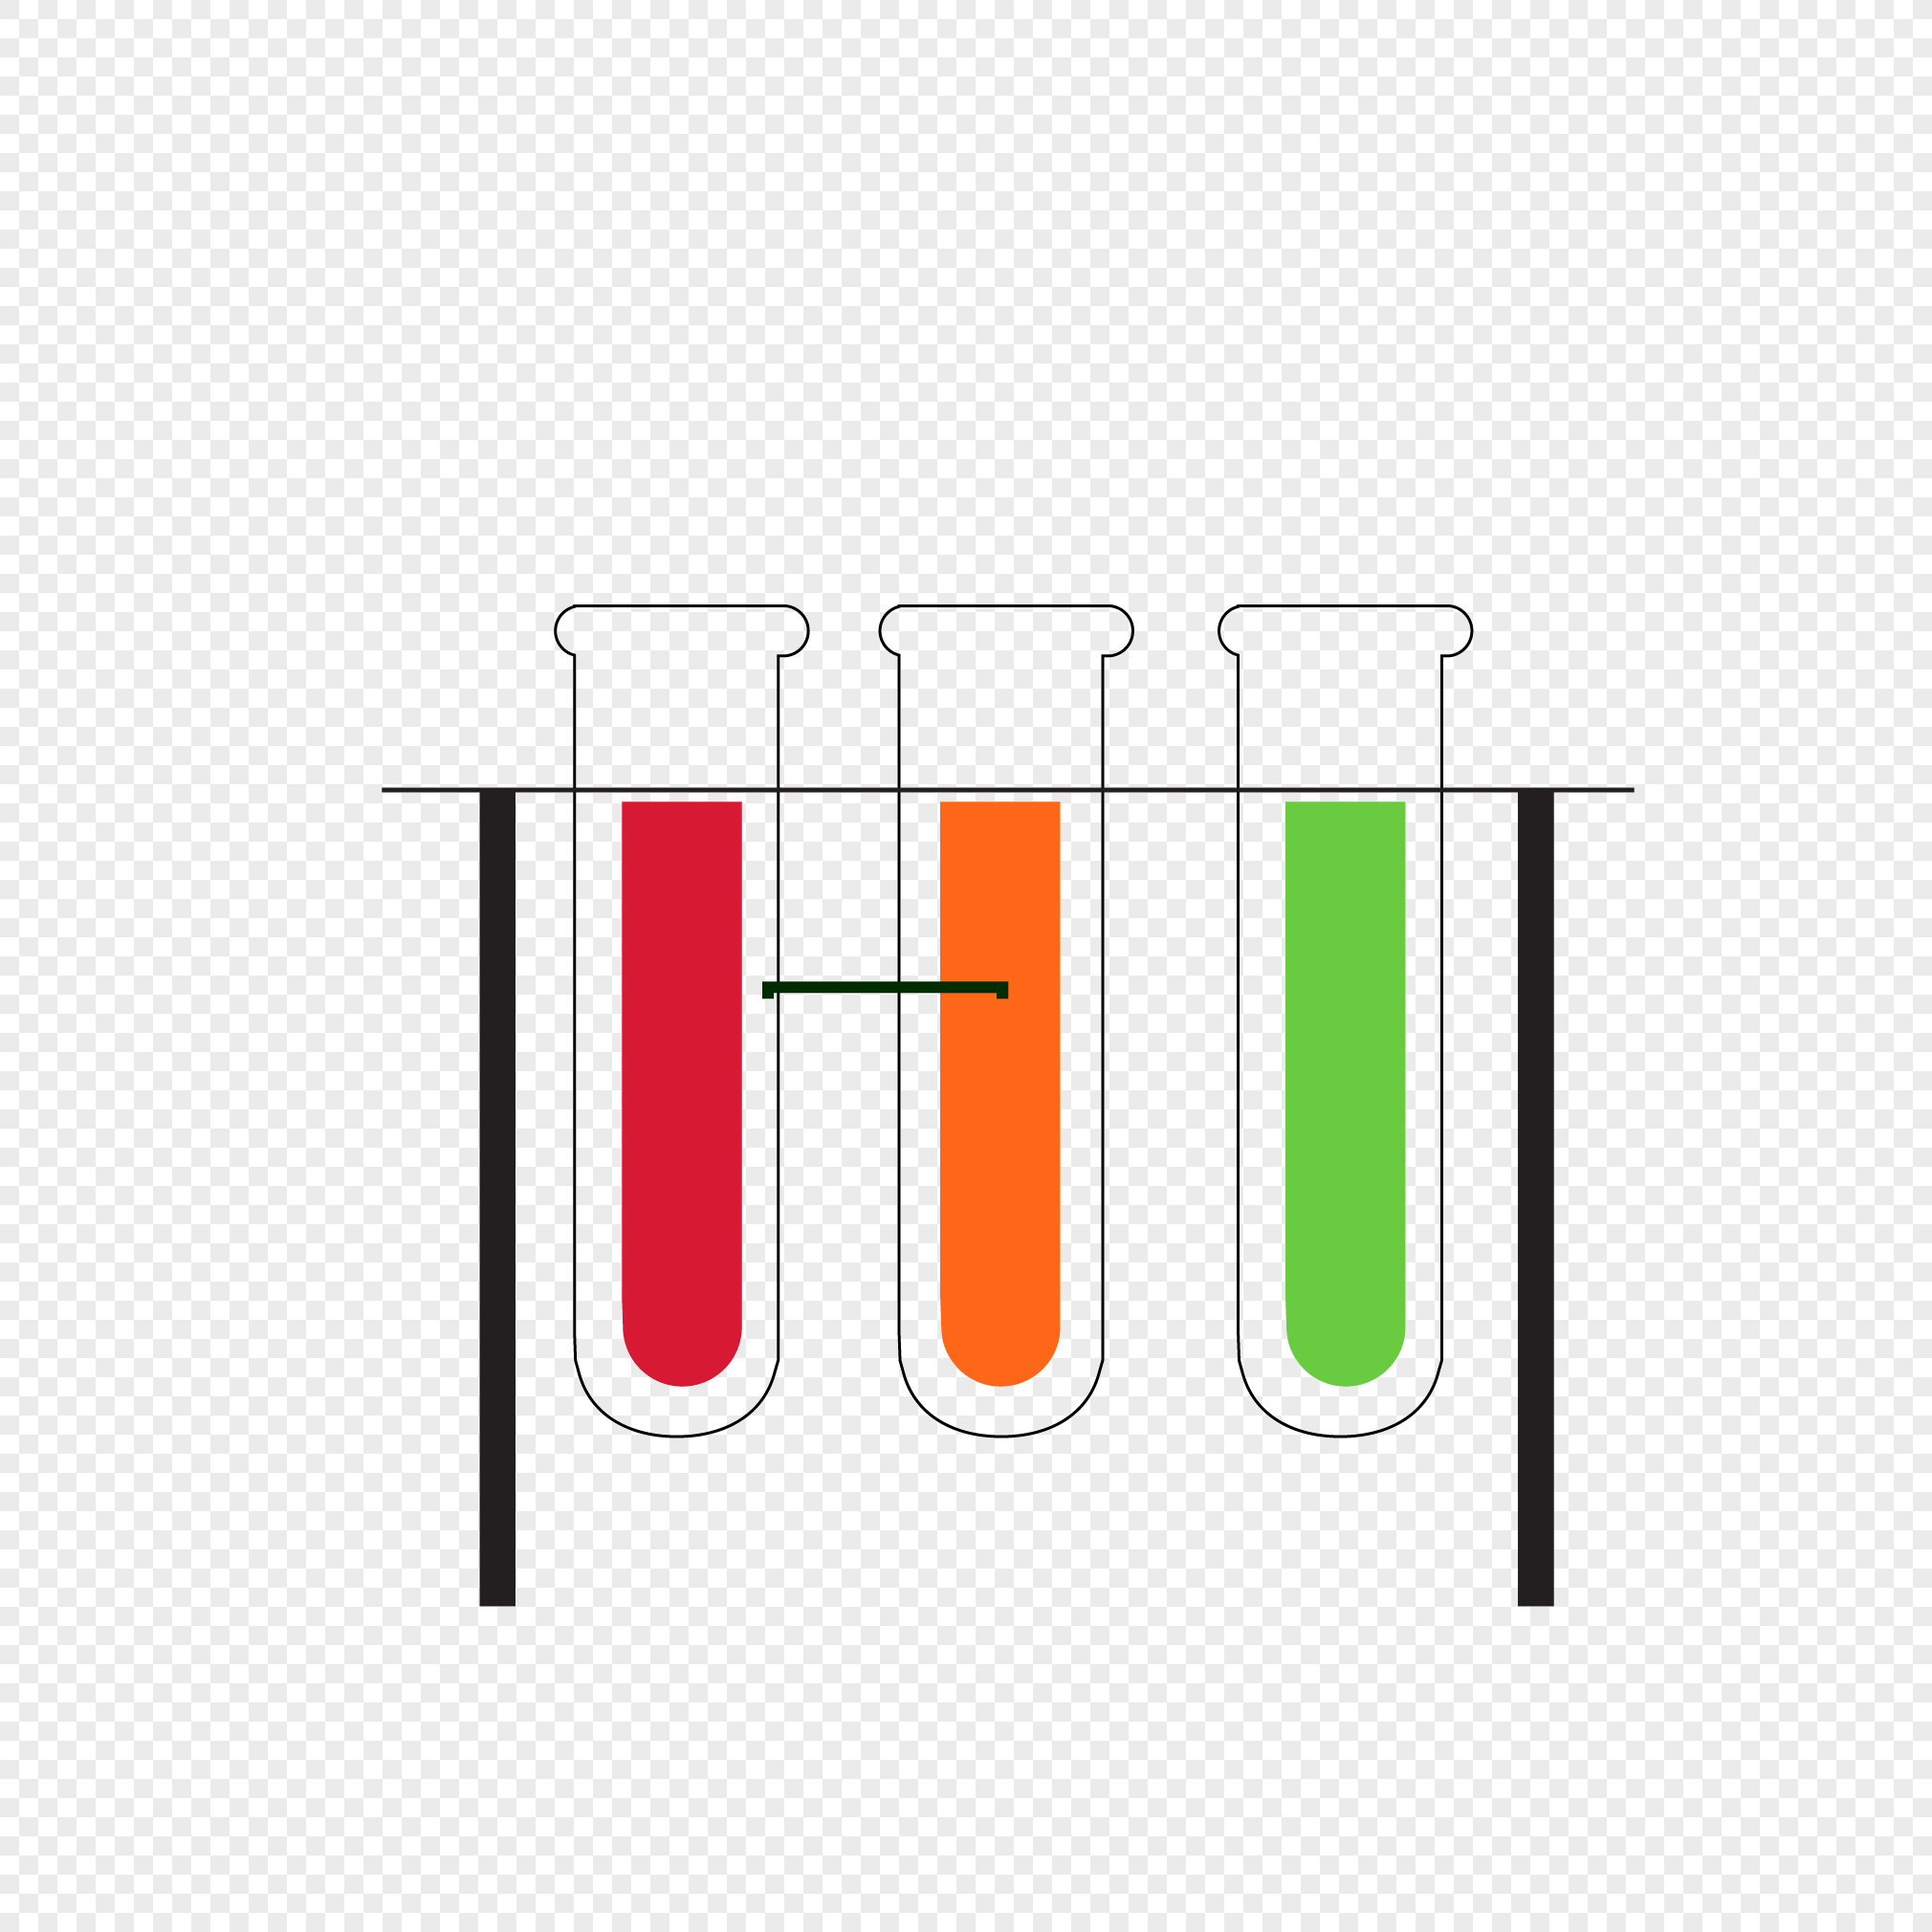 2020x2020 Hand Drawn Line Test Tube Vector Graphics Png Image Picture Free